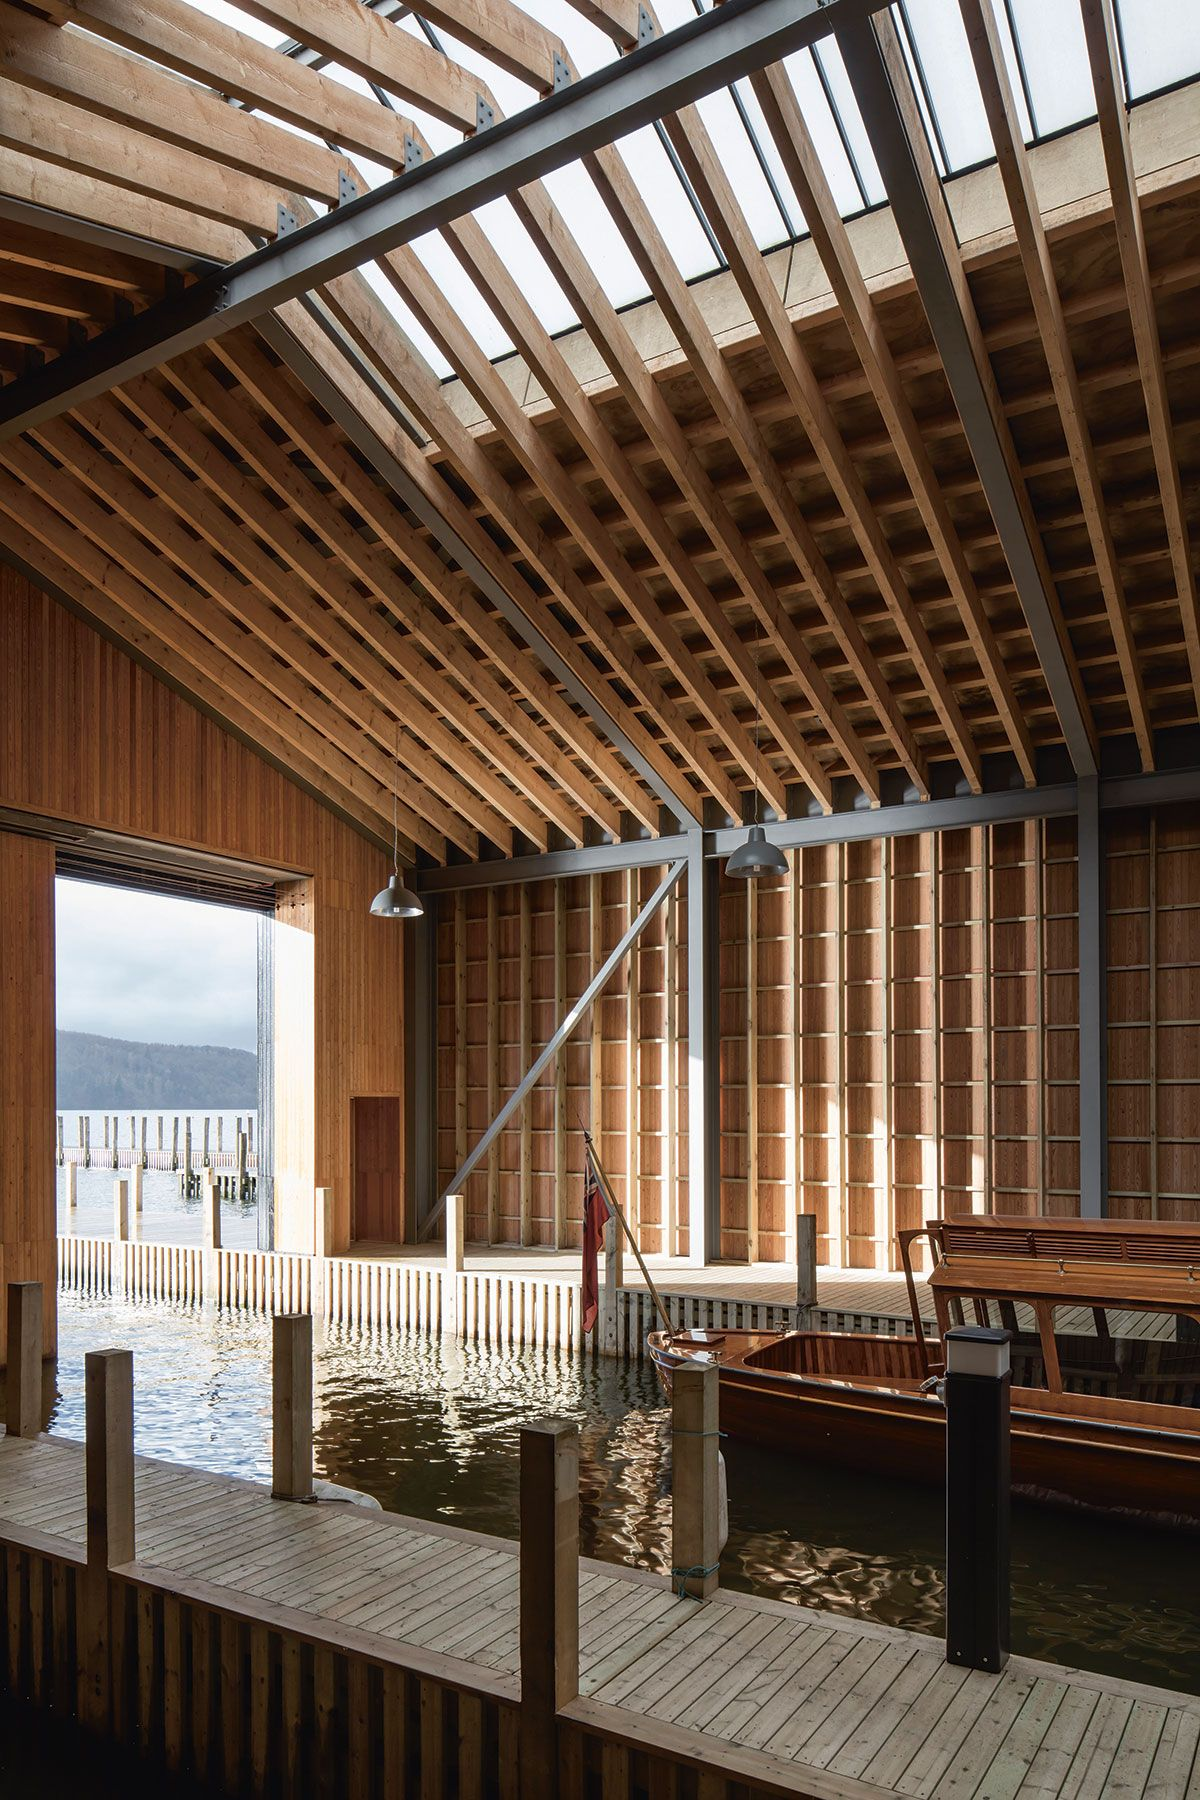 It was almost inevitable a boathouse would be central to the design the large sliding